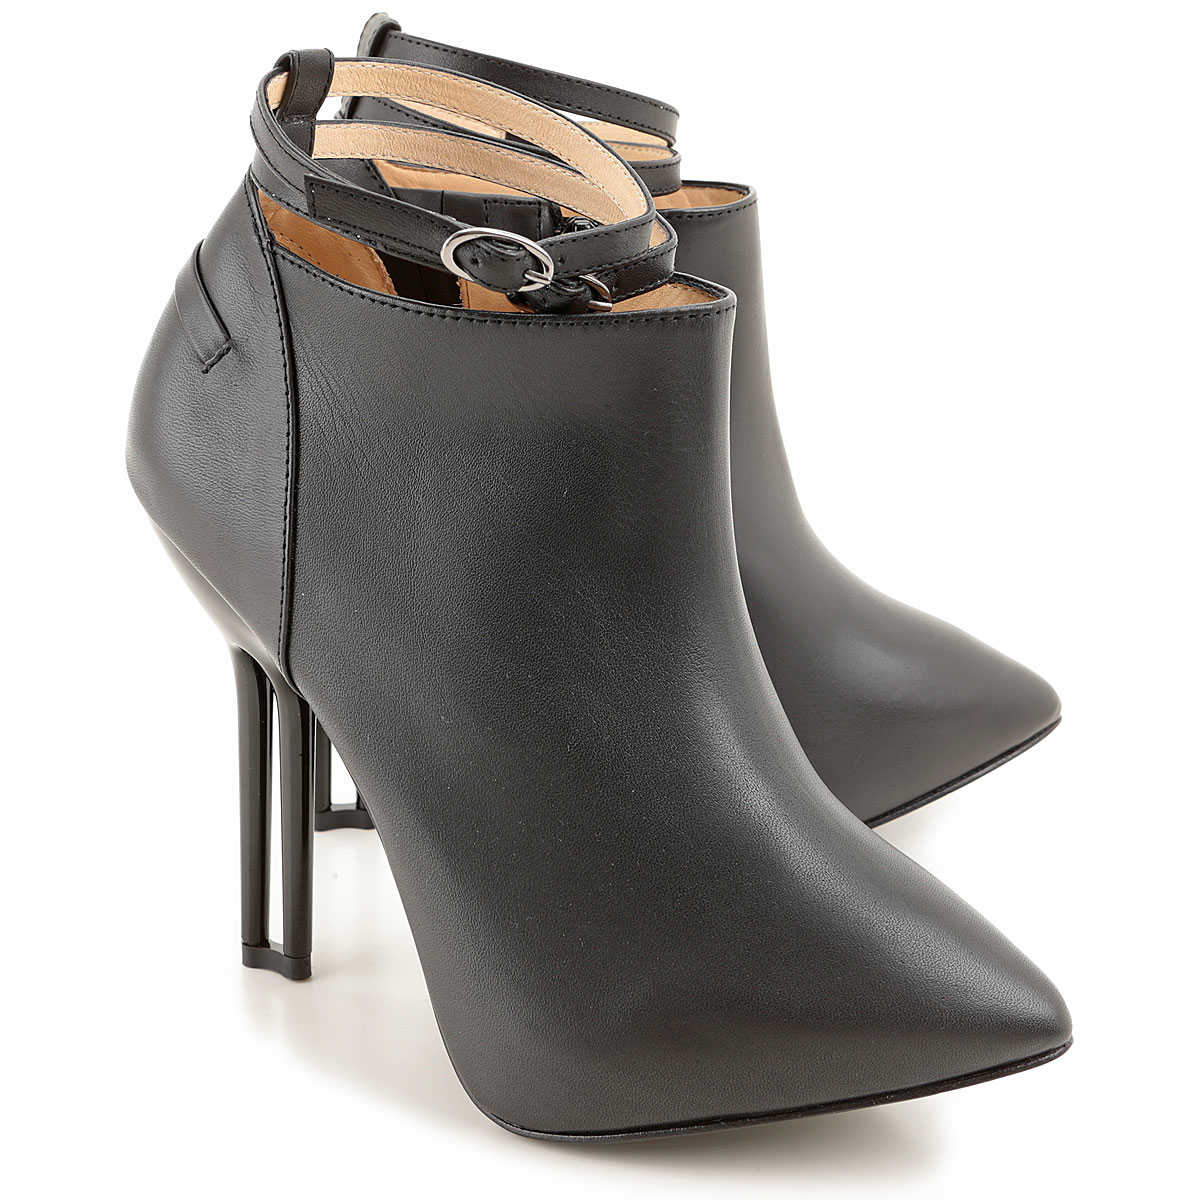 J.P. Gaultier Boots for Women Booties On Sale SE - GOOFASH